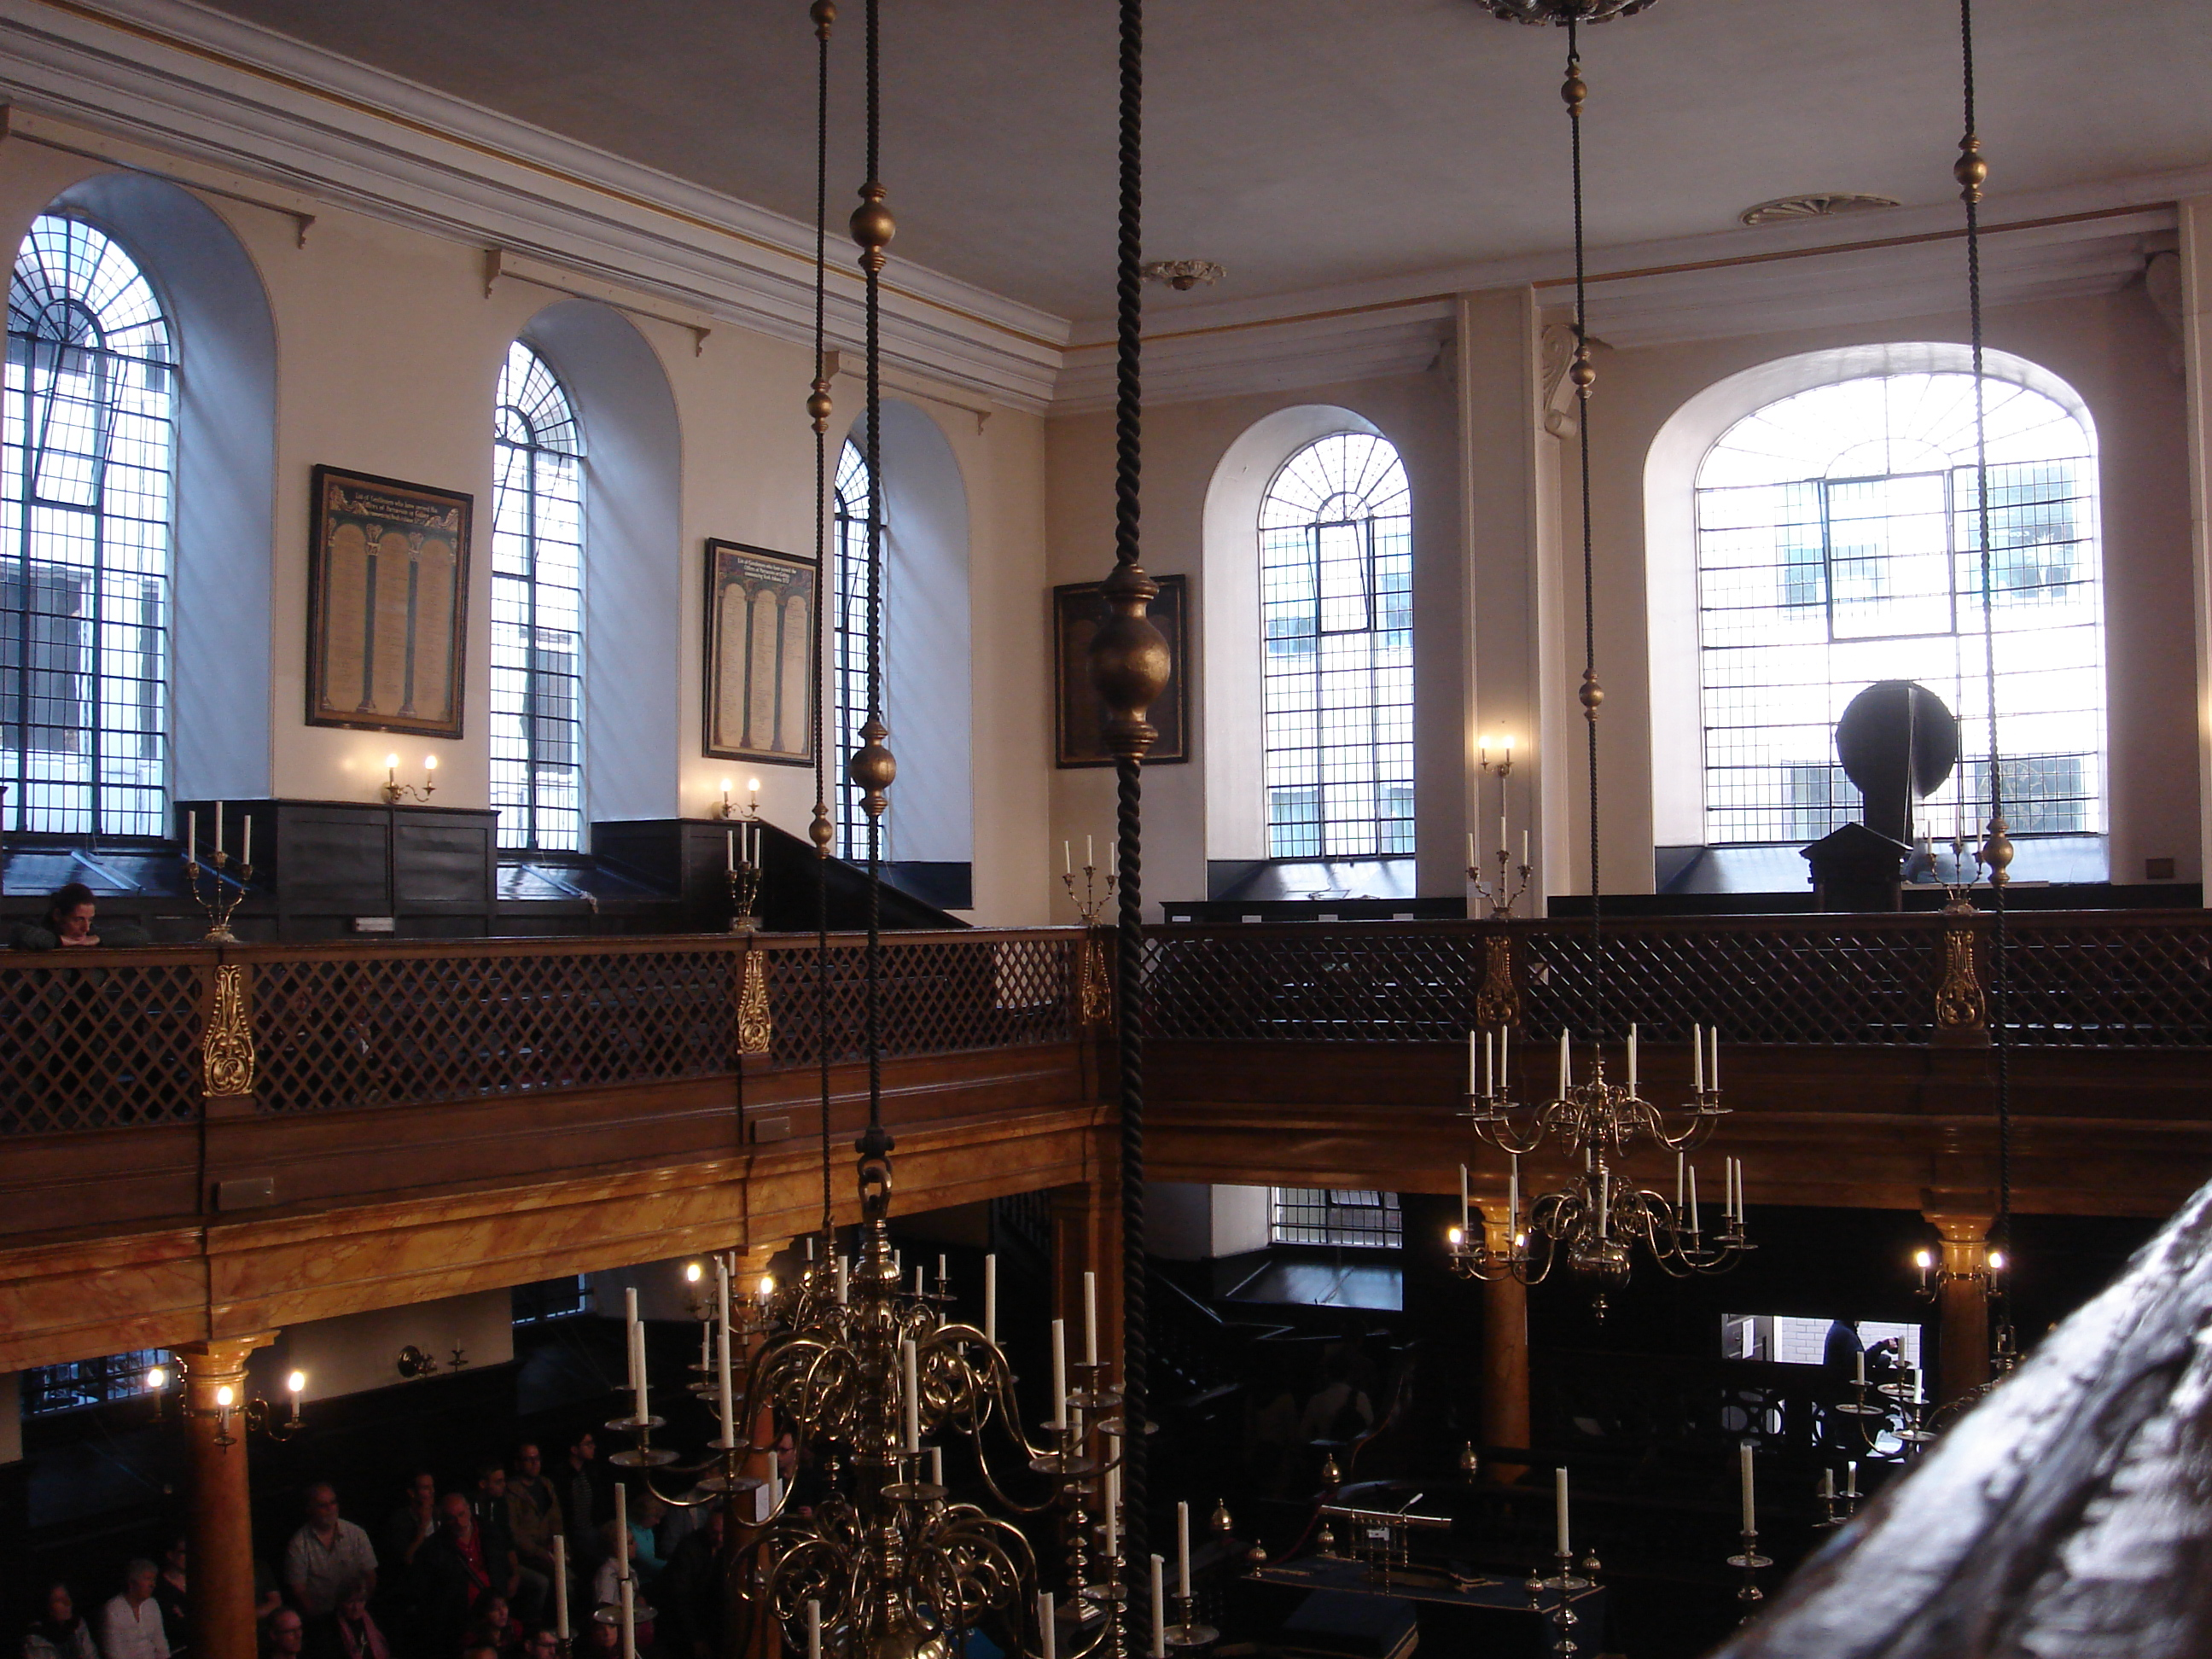 Interior, Bevis Marks synagogue. Photo: By Edwardx (Own work) [CC BY-SA 3.0, via Wikimedia Commons